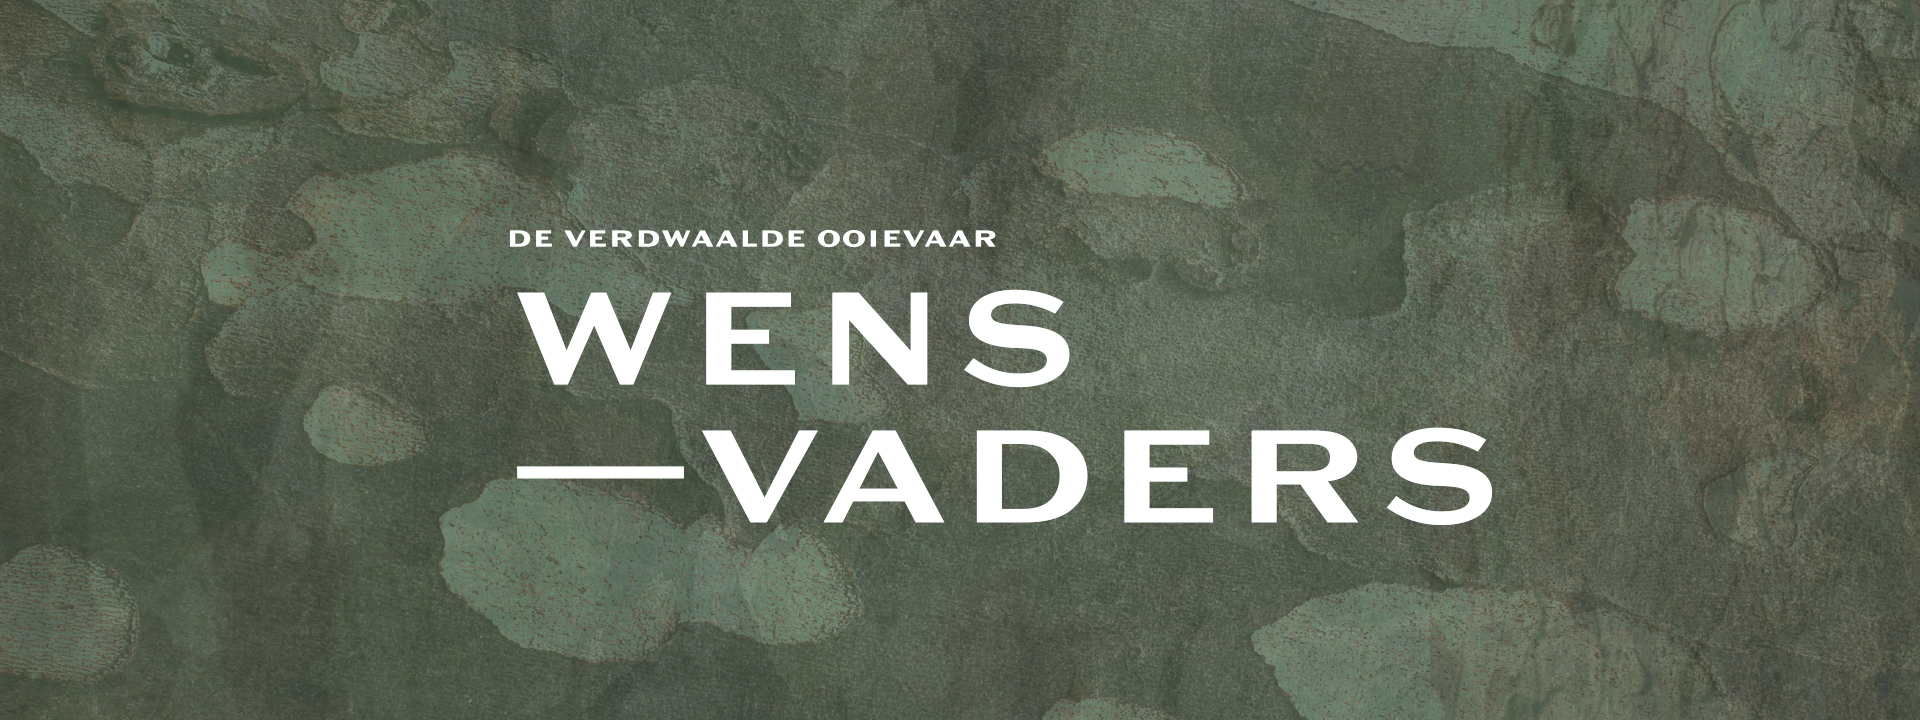 DVO-wensvaders-header-01-1920x720